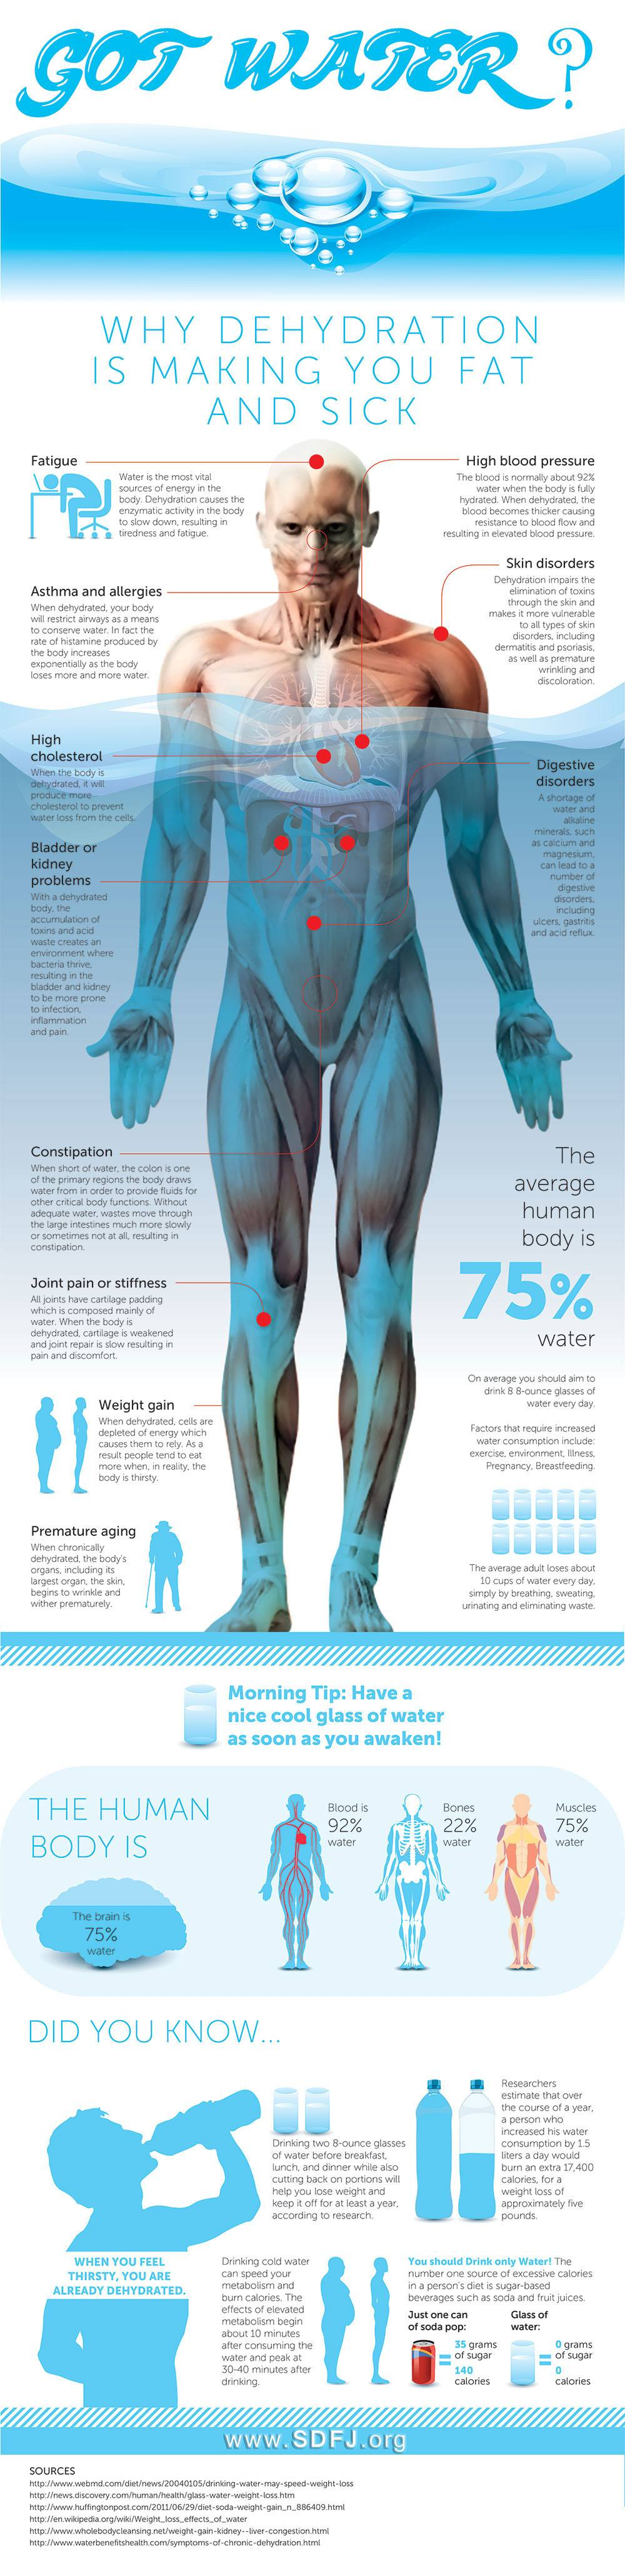 Dehydration-Makes-You-Fat-and-Sick